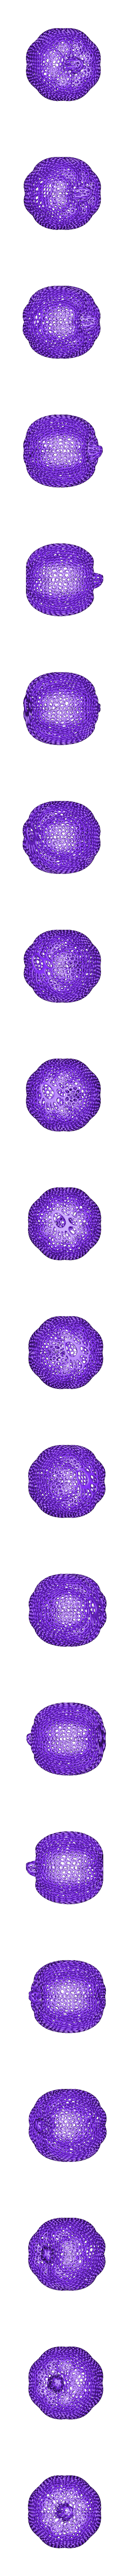 pumpkin_xyz_-_Voronoi_fine.STL Download free STL file Pumpkin - Voronoi Style • 3D printable object, Numbmond